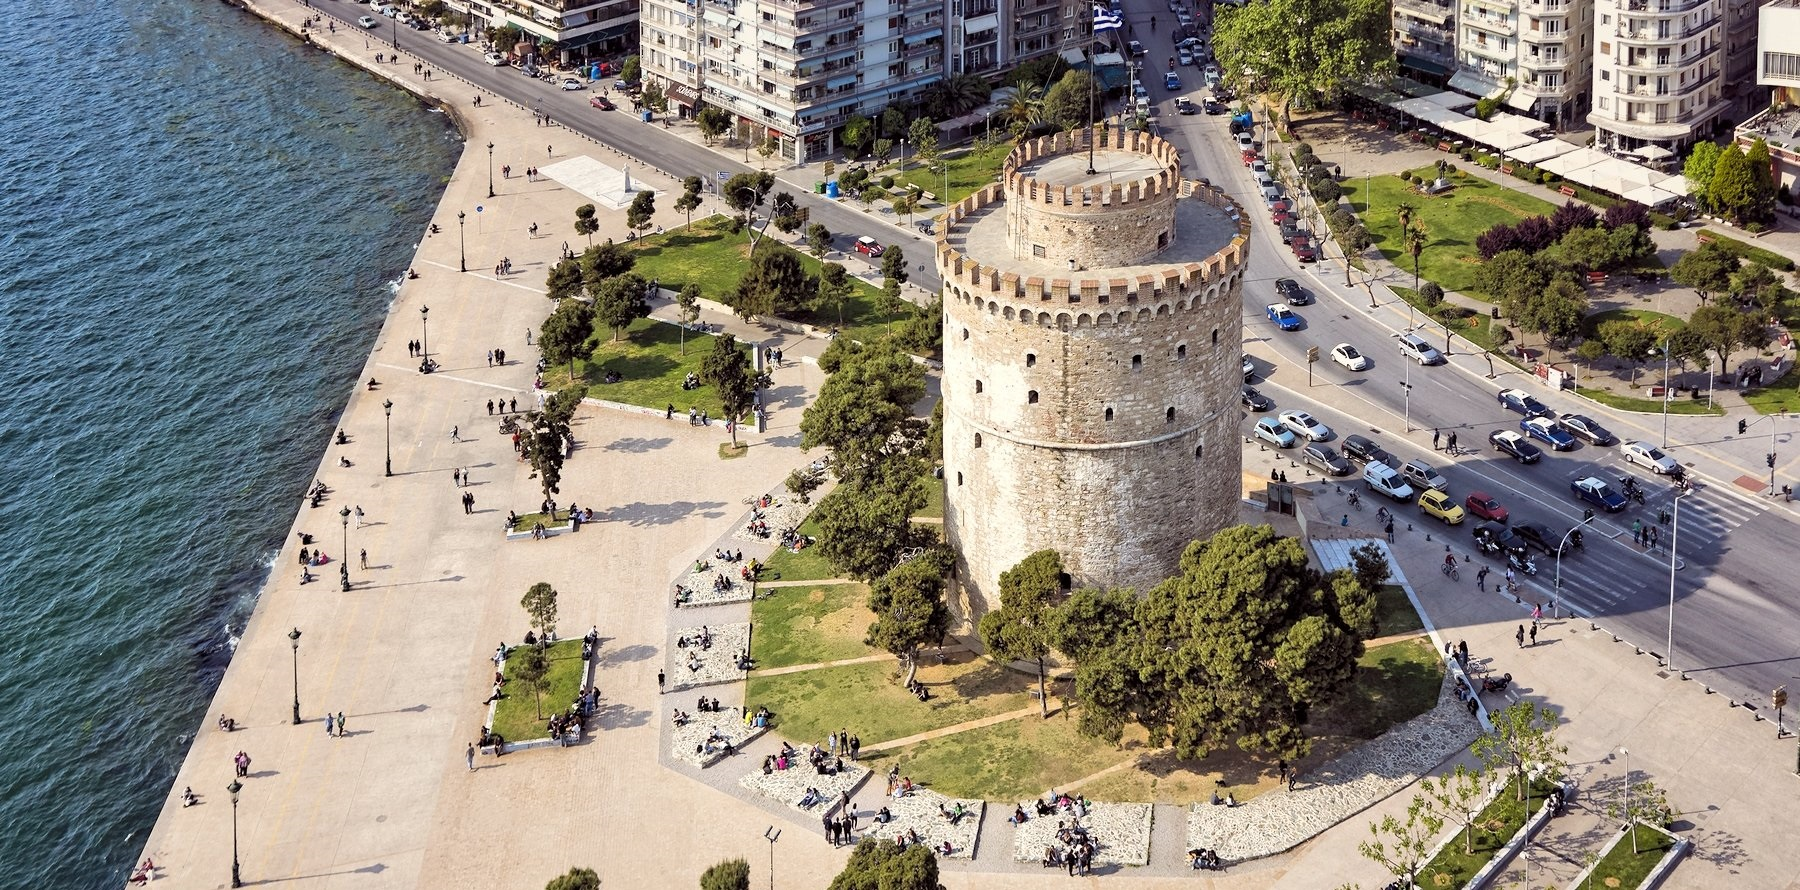 Get ready for WordCamp Thessaloniki 2019 #WCTHESS2019